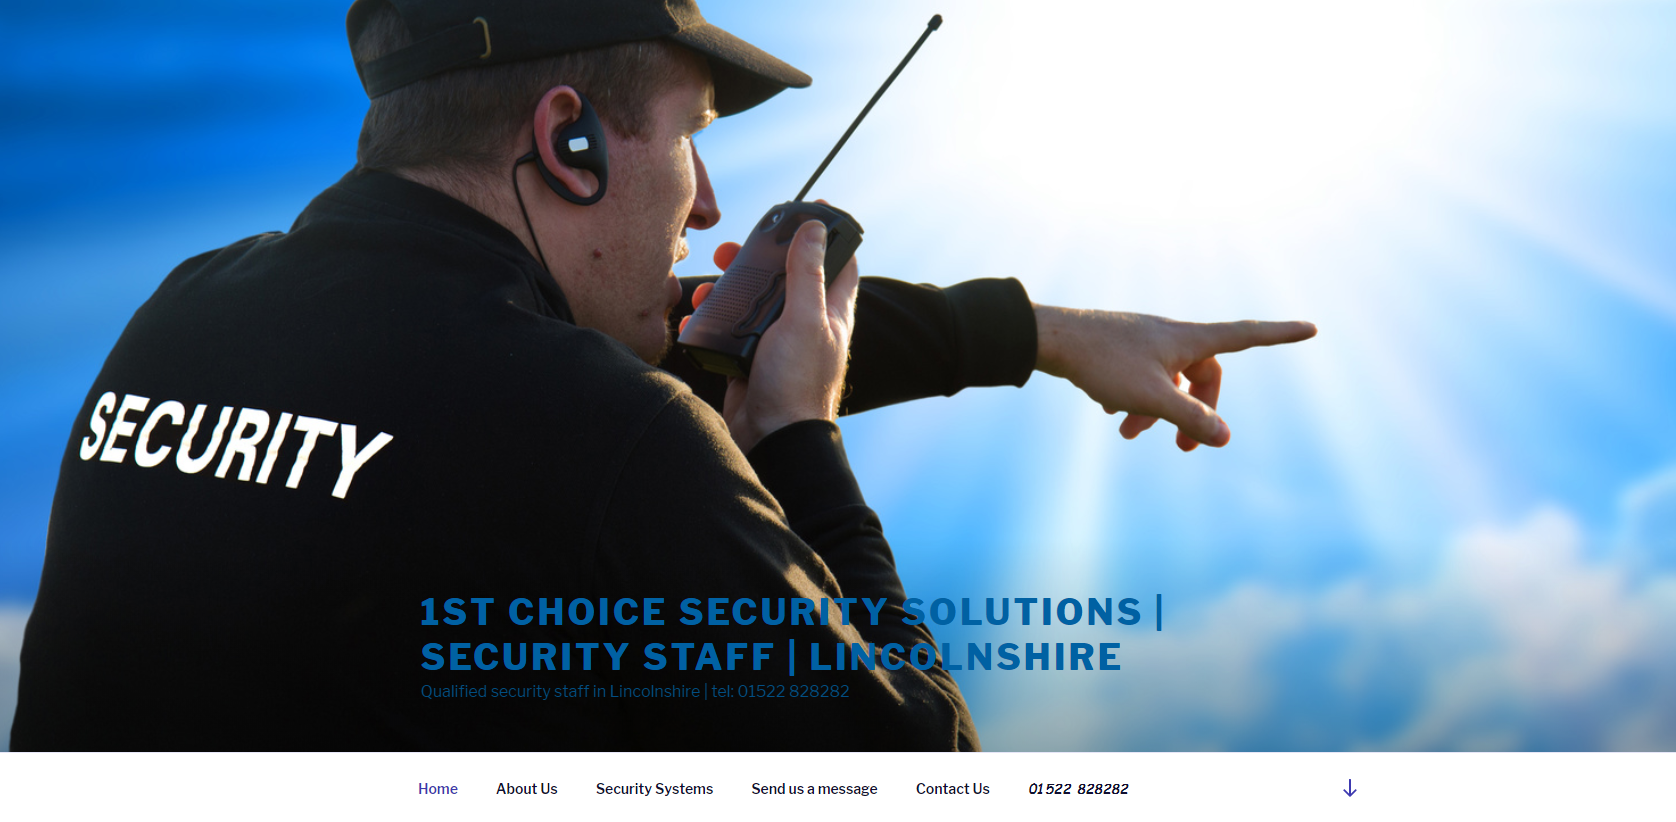 1st Choice Security Solutions